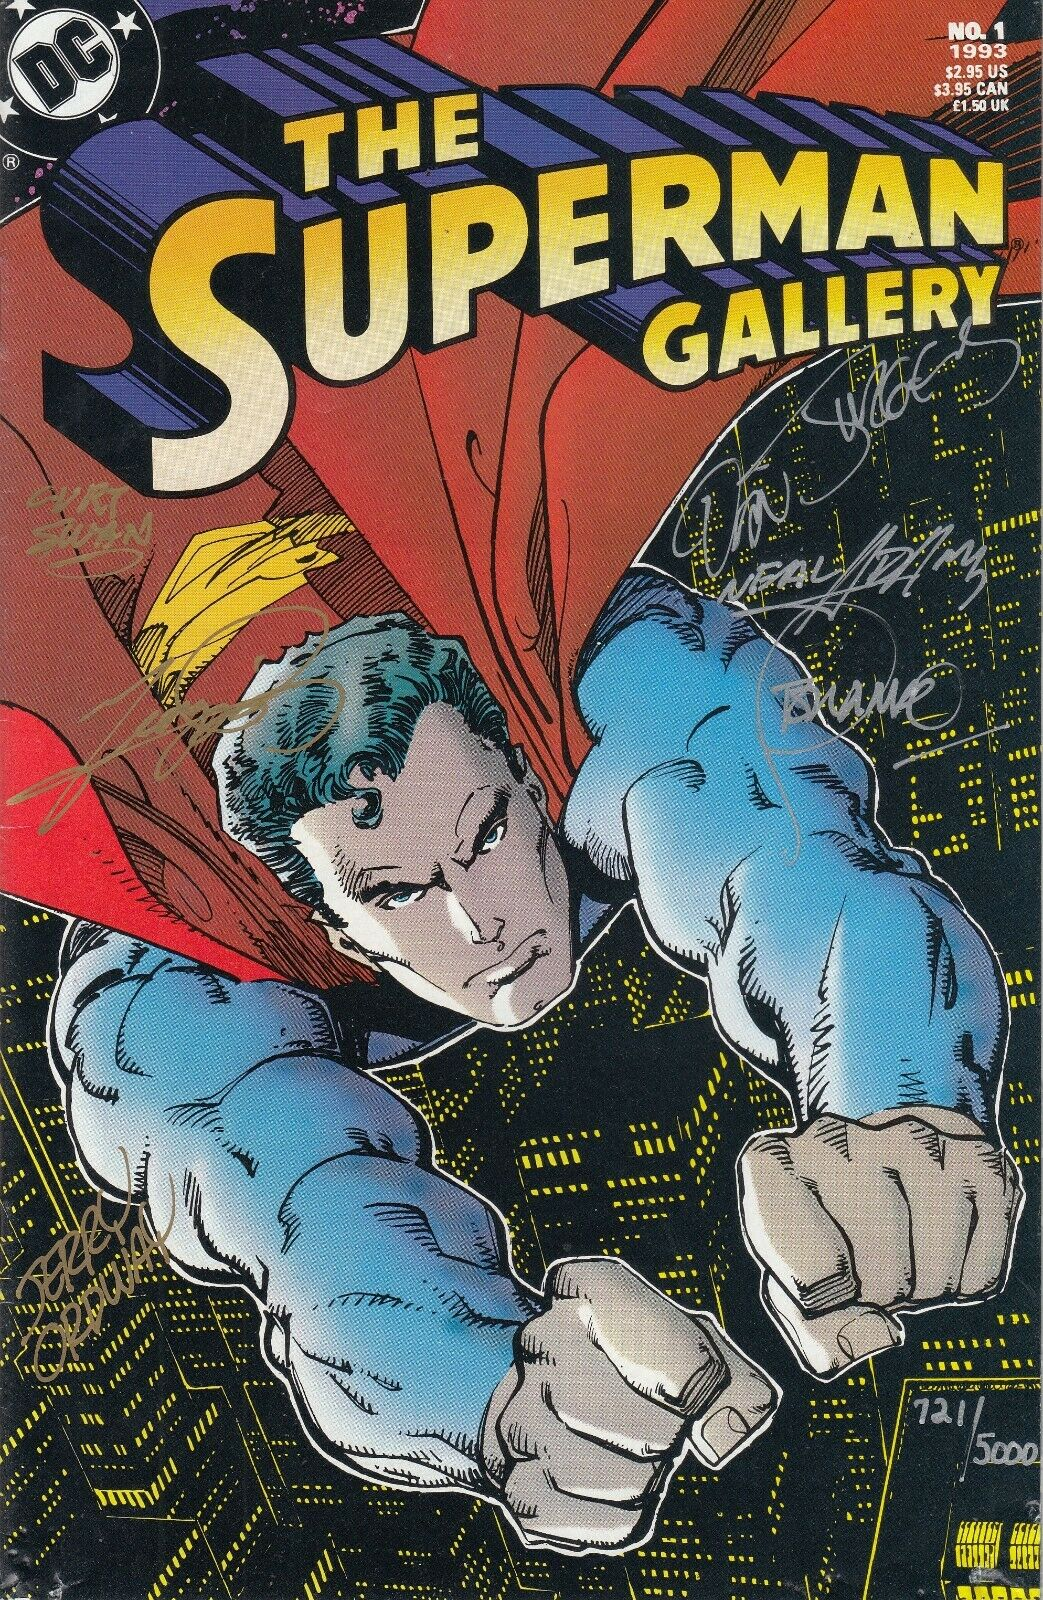 DC Comics Superman Gallery, Signed by Curt Swan, George Perez, Neal Adams, more